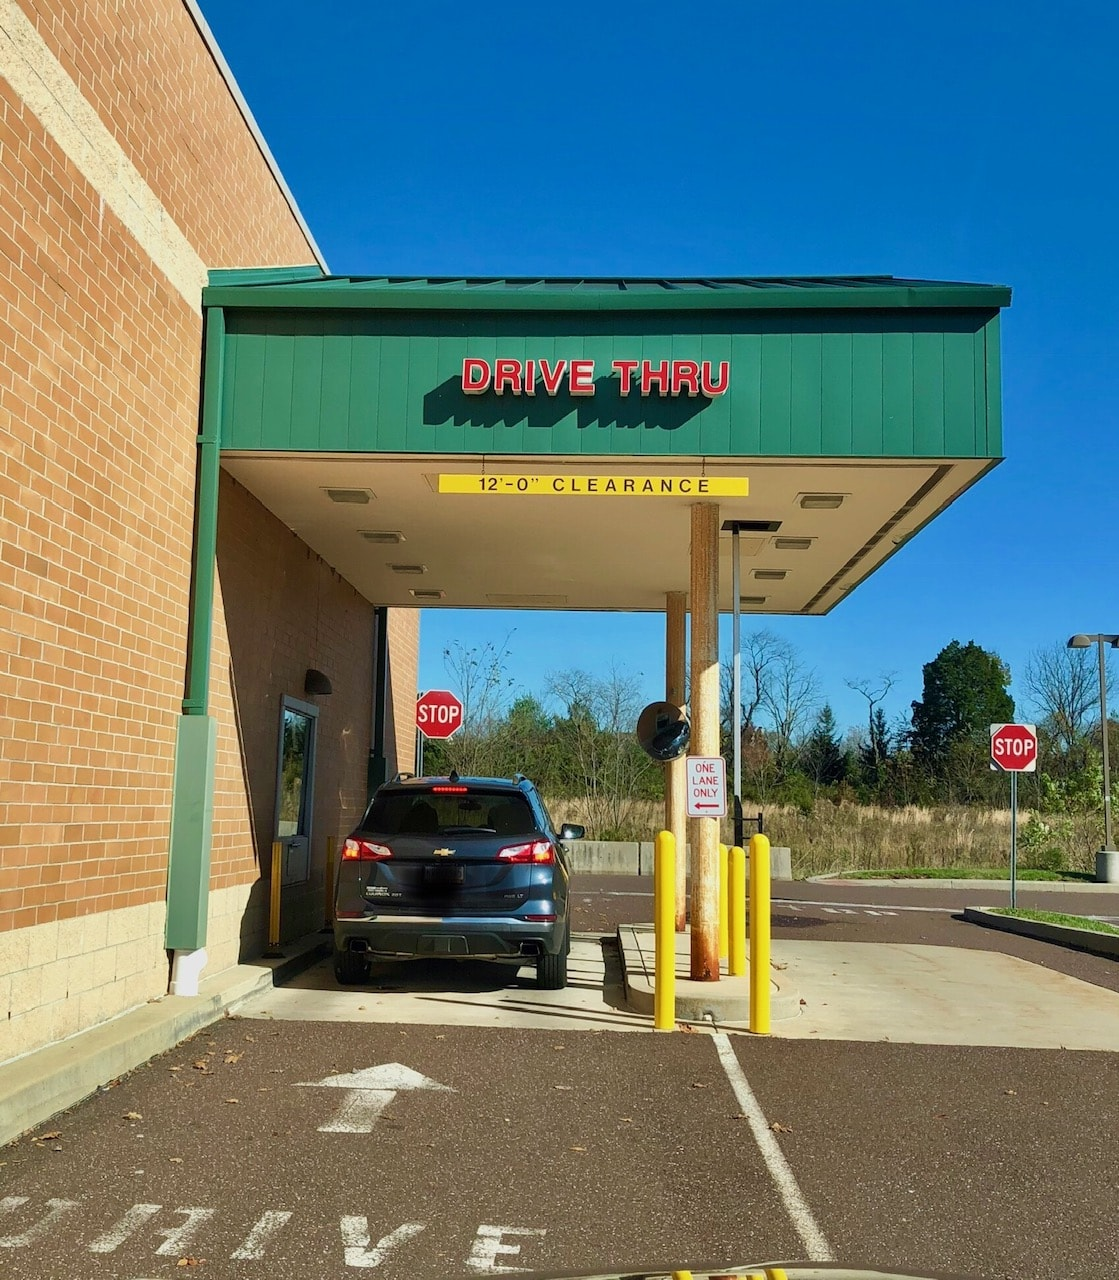 Walgreens Care Story- With cold and flu season, you can get your medicine in the Walgreens drive thru. Get the care you trust and deserve at Walgreens.